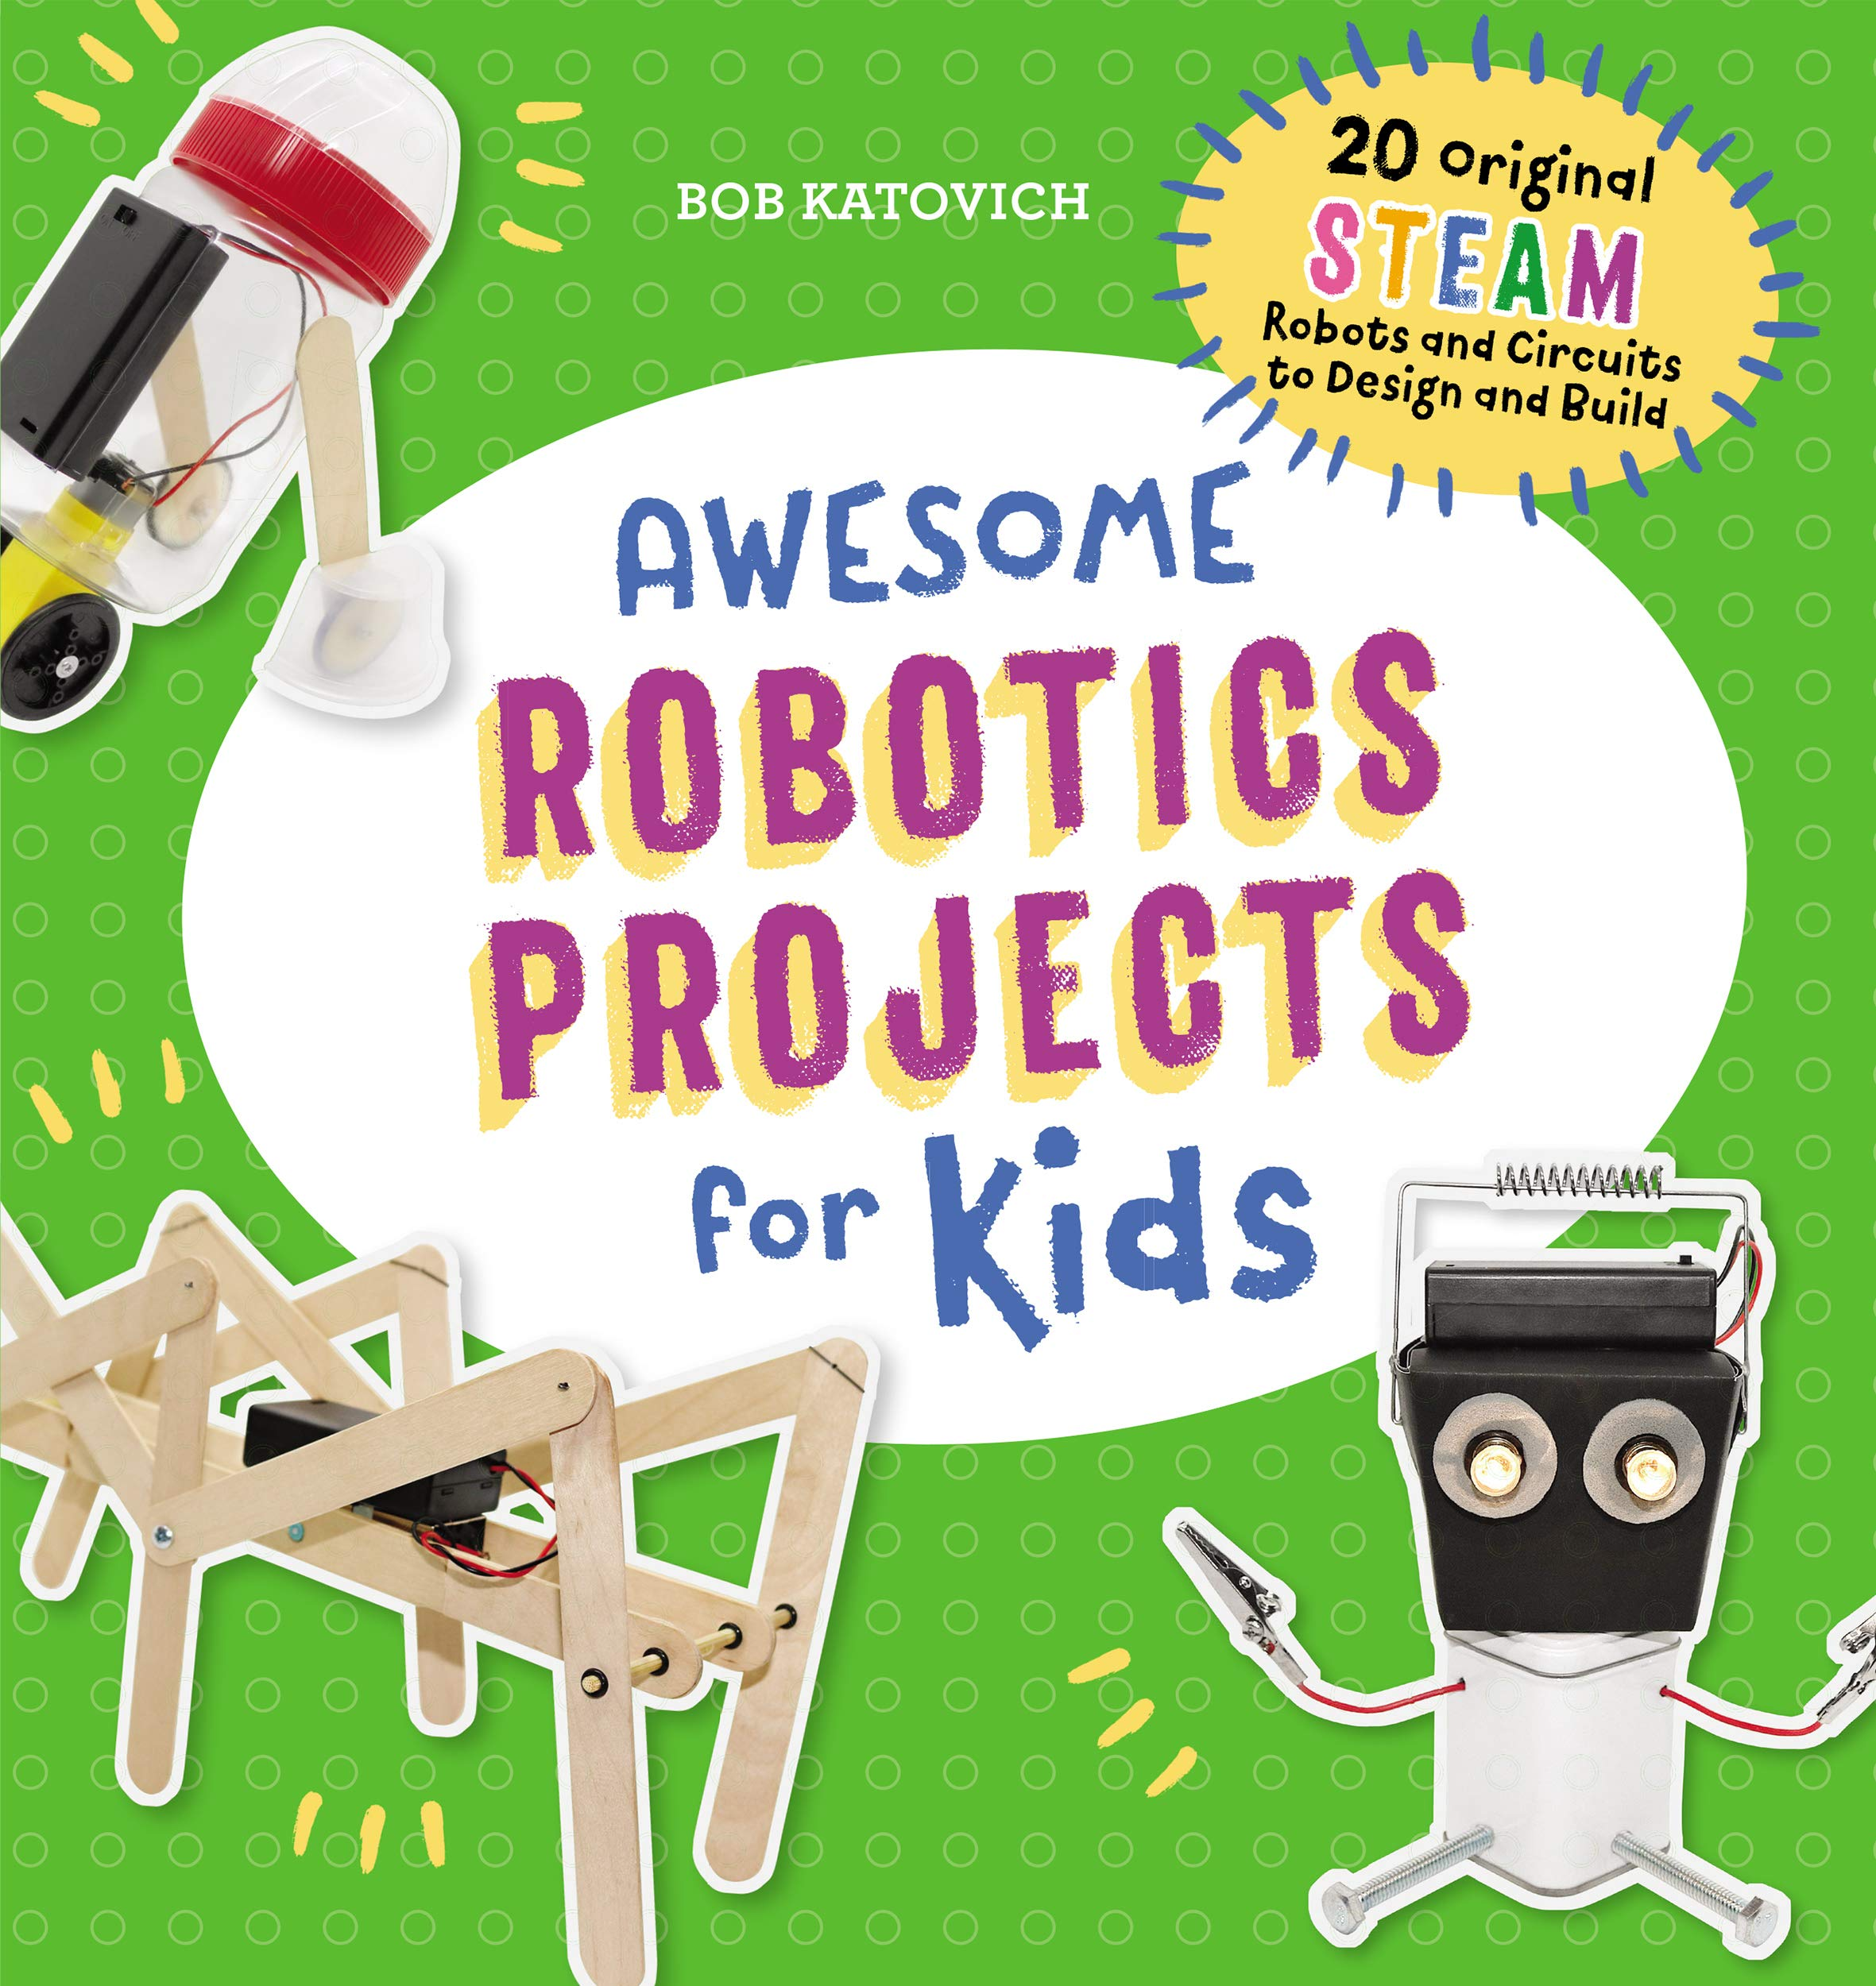 Amazon.com: Awesome Robotics Projects for Kids: 20 Original ...